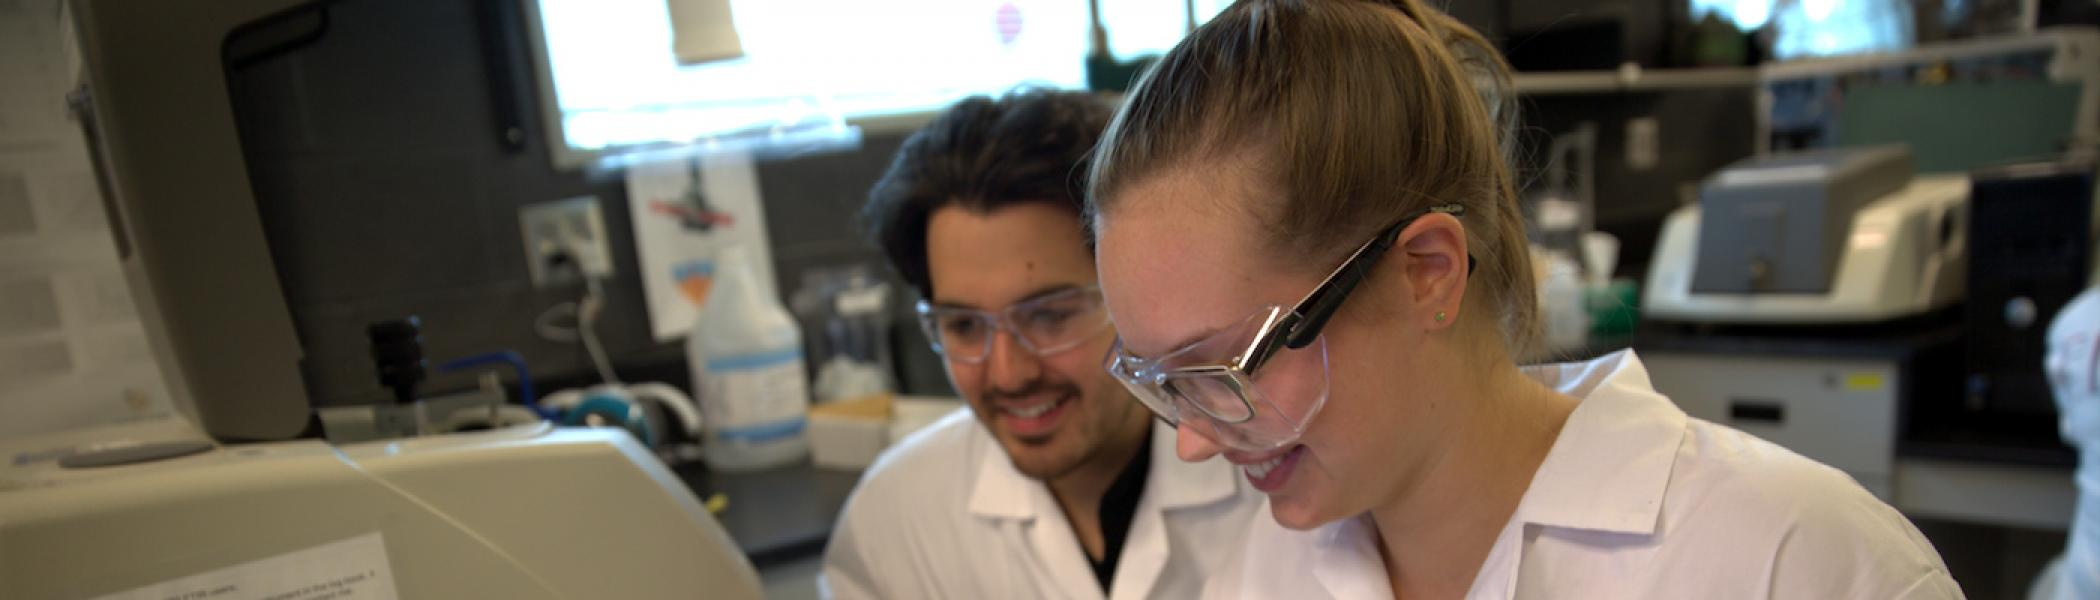 2 students wearing lab coats and glasses looking down at something and smiling